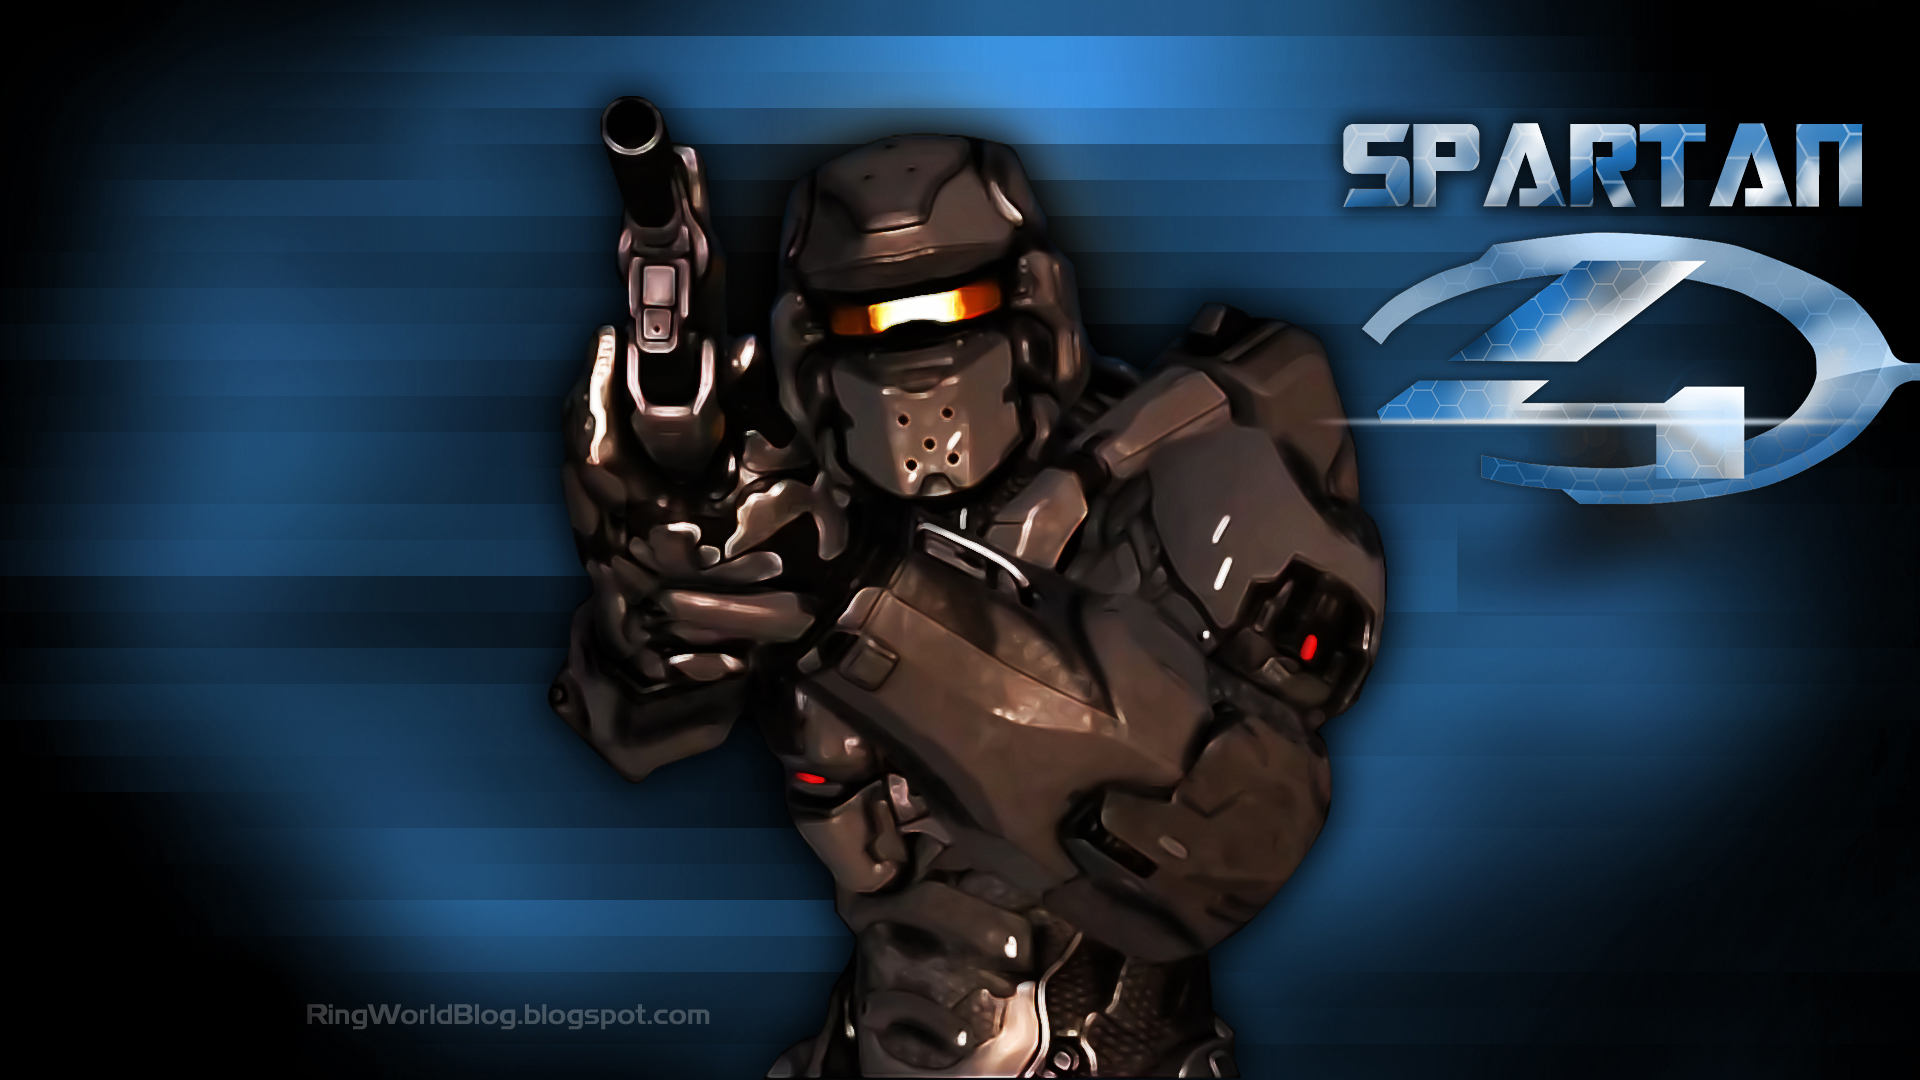 Halo 4 Spartan Wallpaper